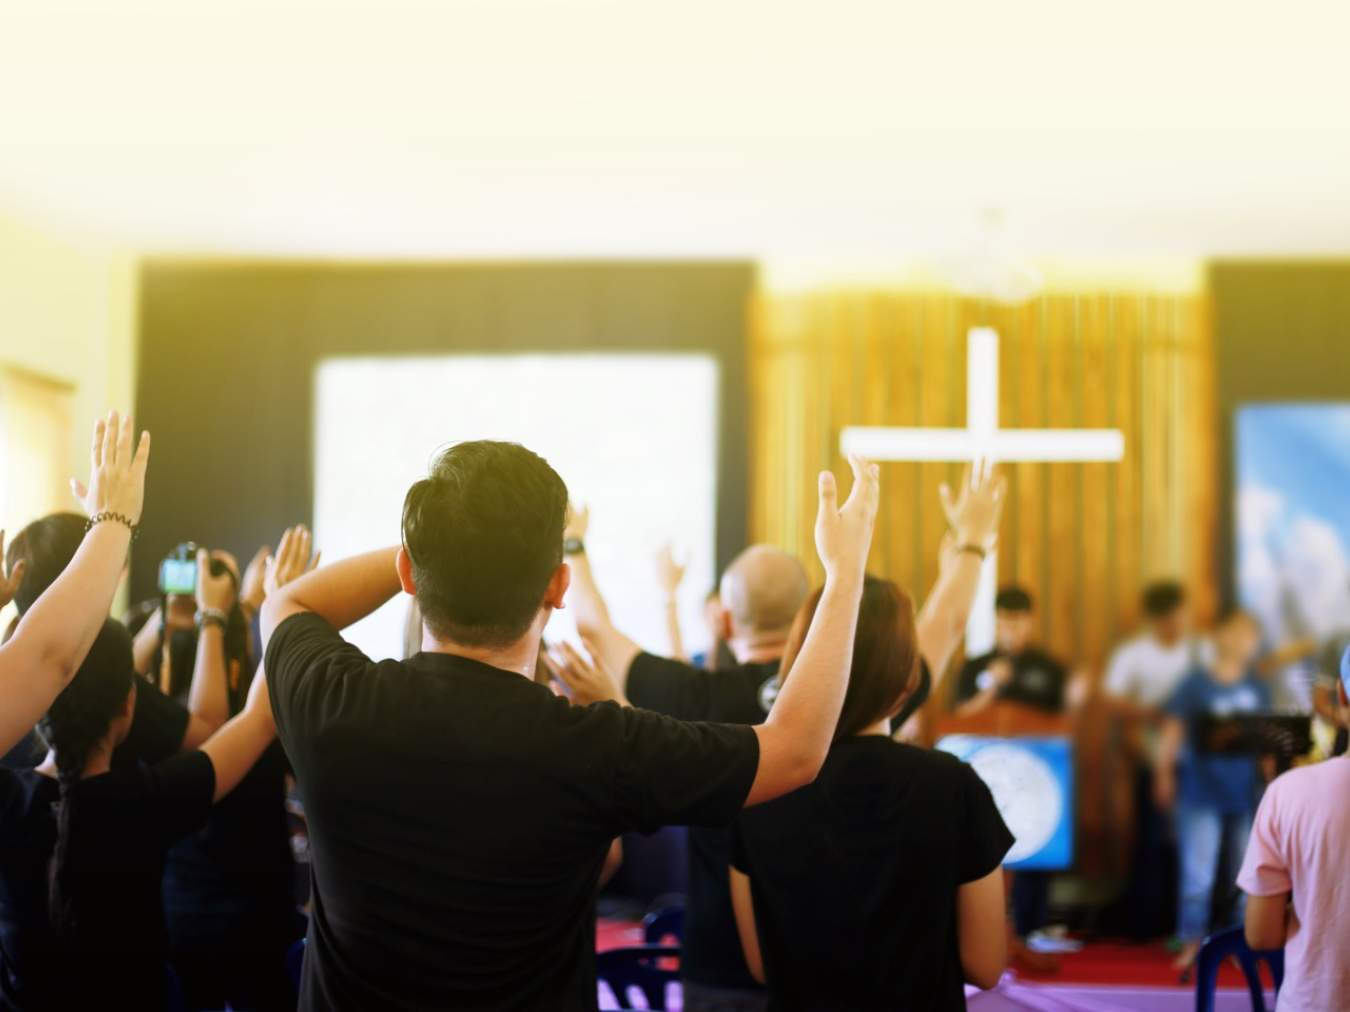 An American Christian youth conference. As in India, dedicated Christian youth are a minority, but are like Daniel and his three friends in today's world.